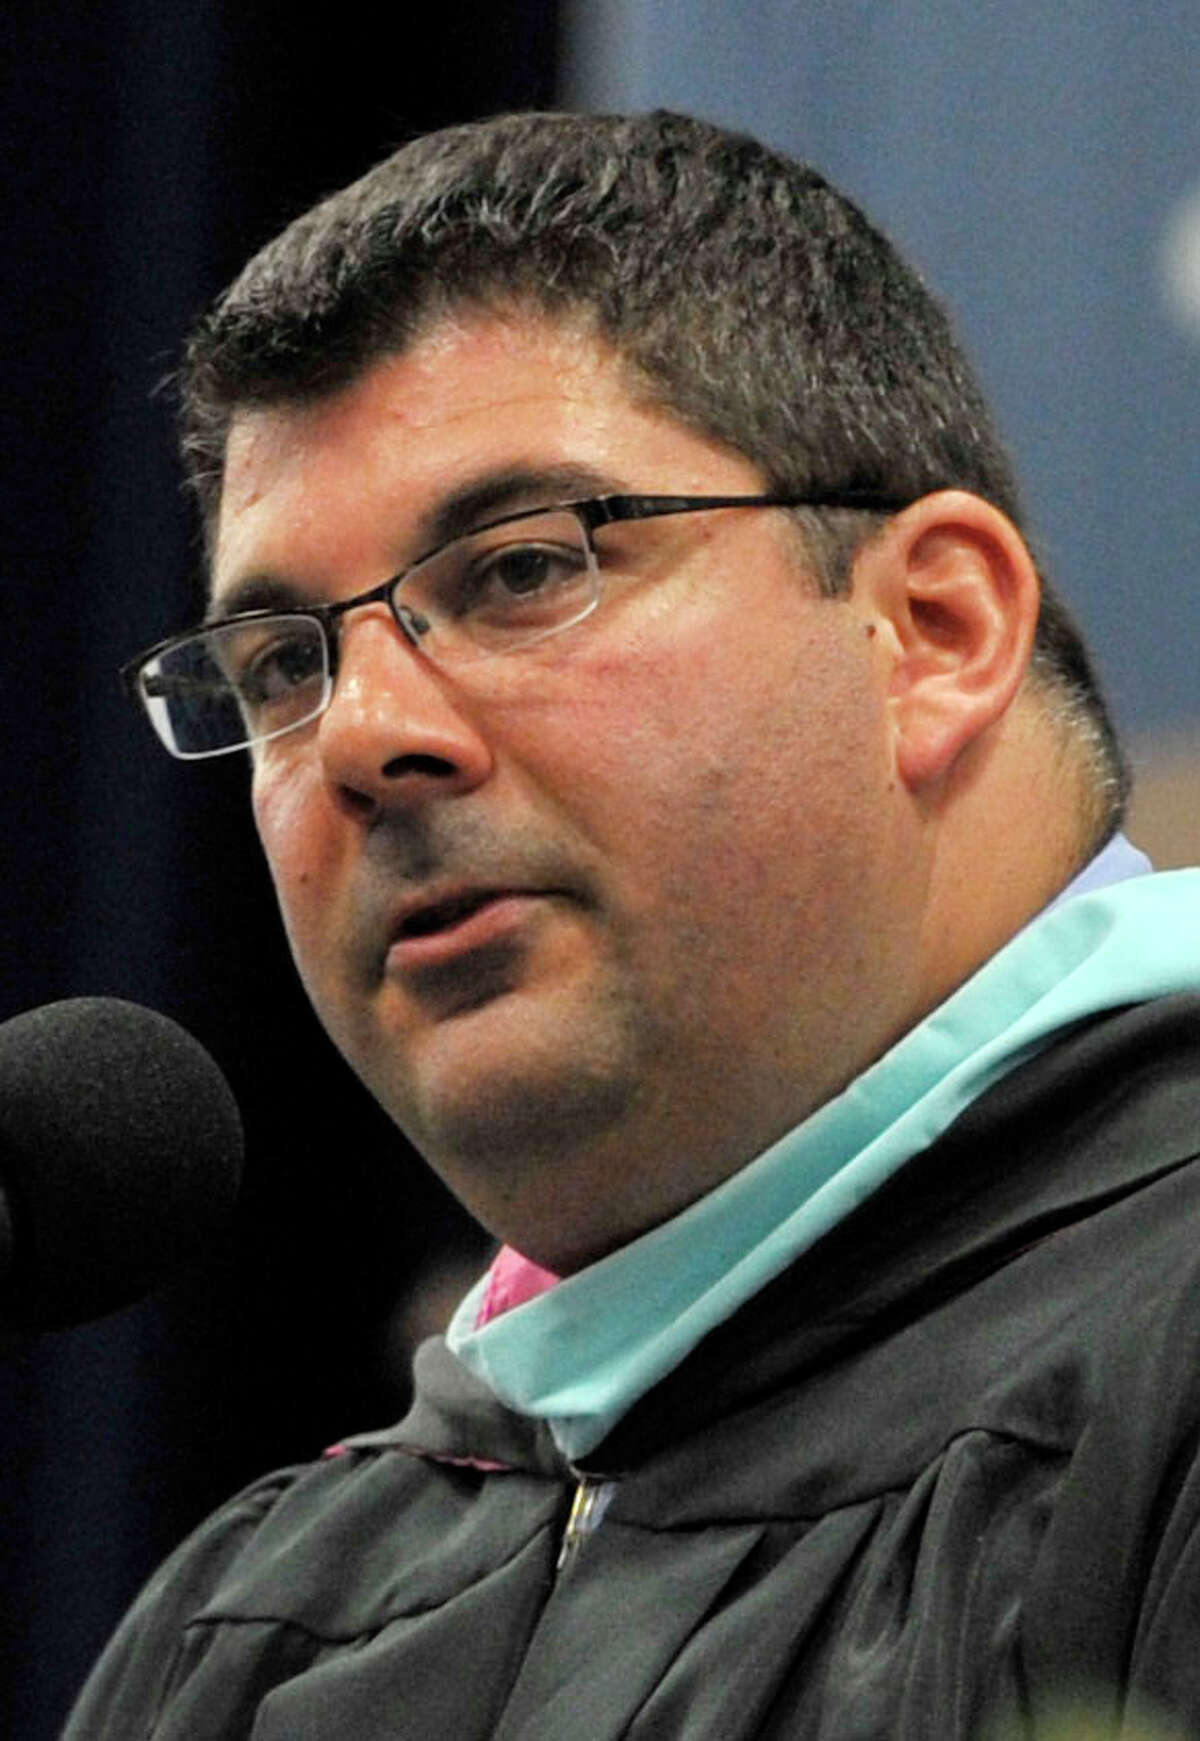 Christopher Troetti is the new principal of Bethel High School. Photographed on Wednesday, June 13, 2012.